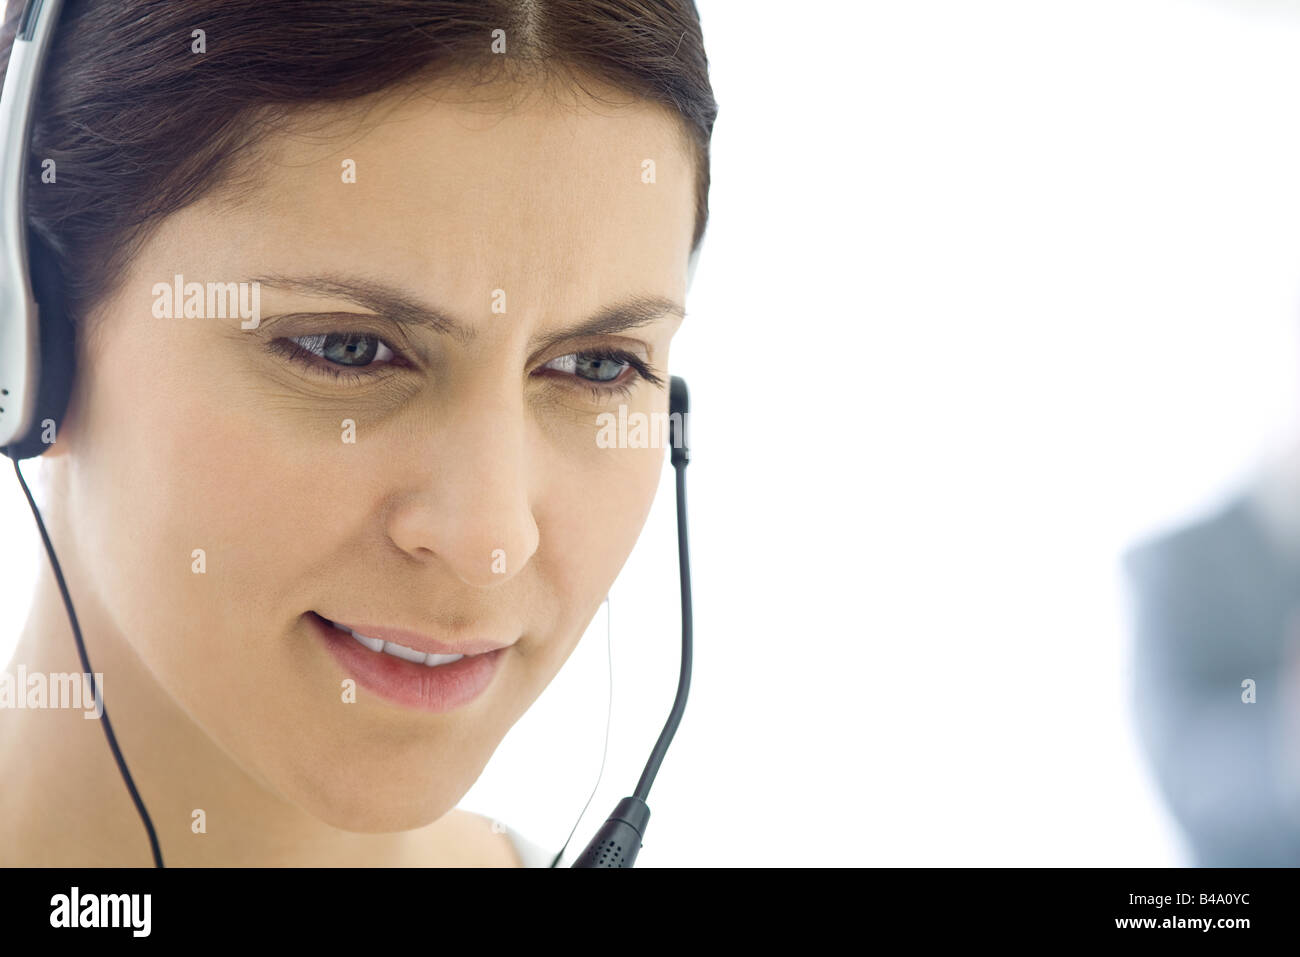 Woman wearing headset, looking down, close-up - Stock Image